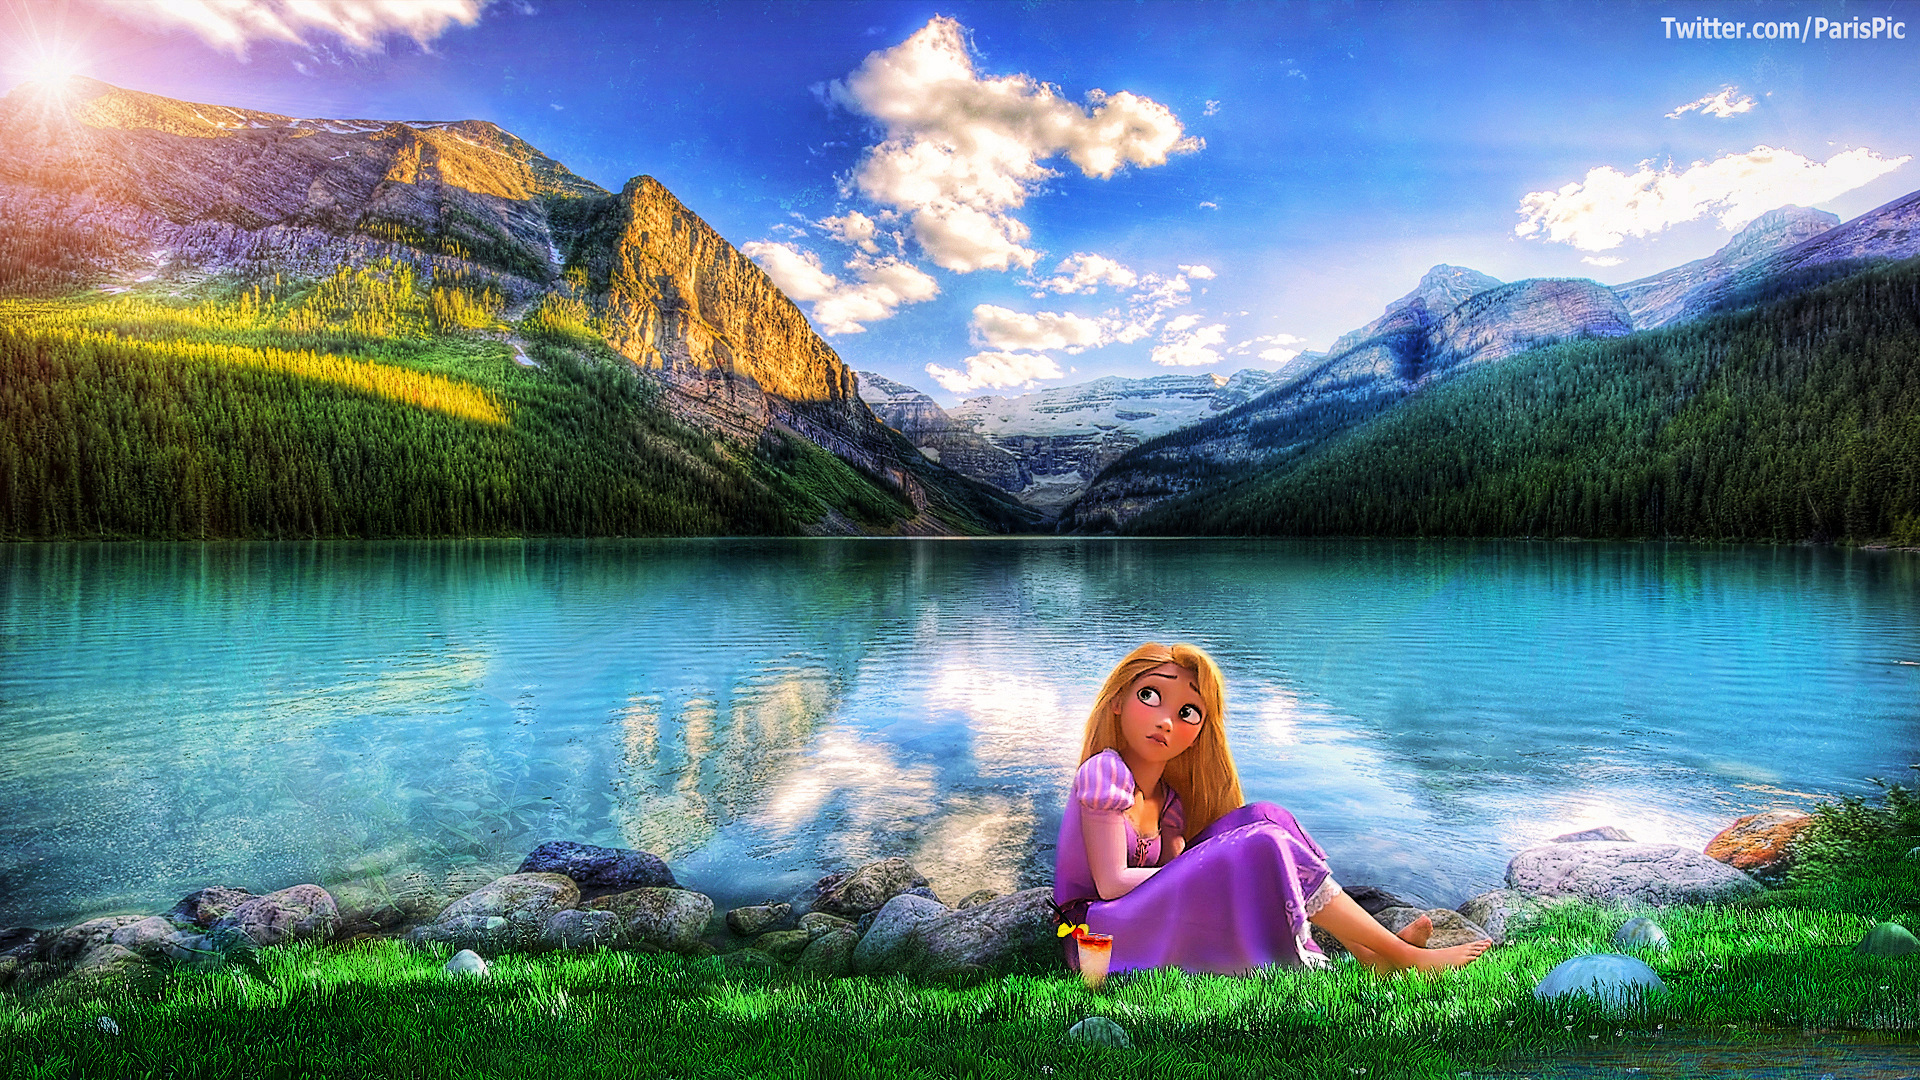 Rapunzel Sit gras Lake Tangled (@ParisPic)